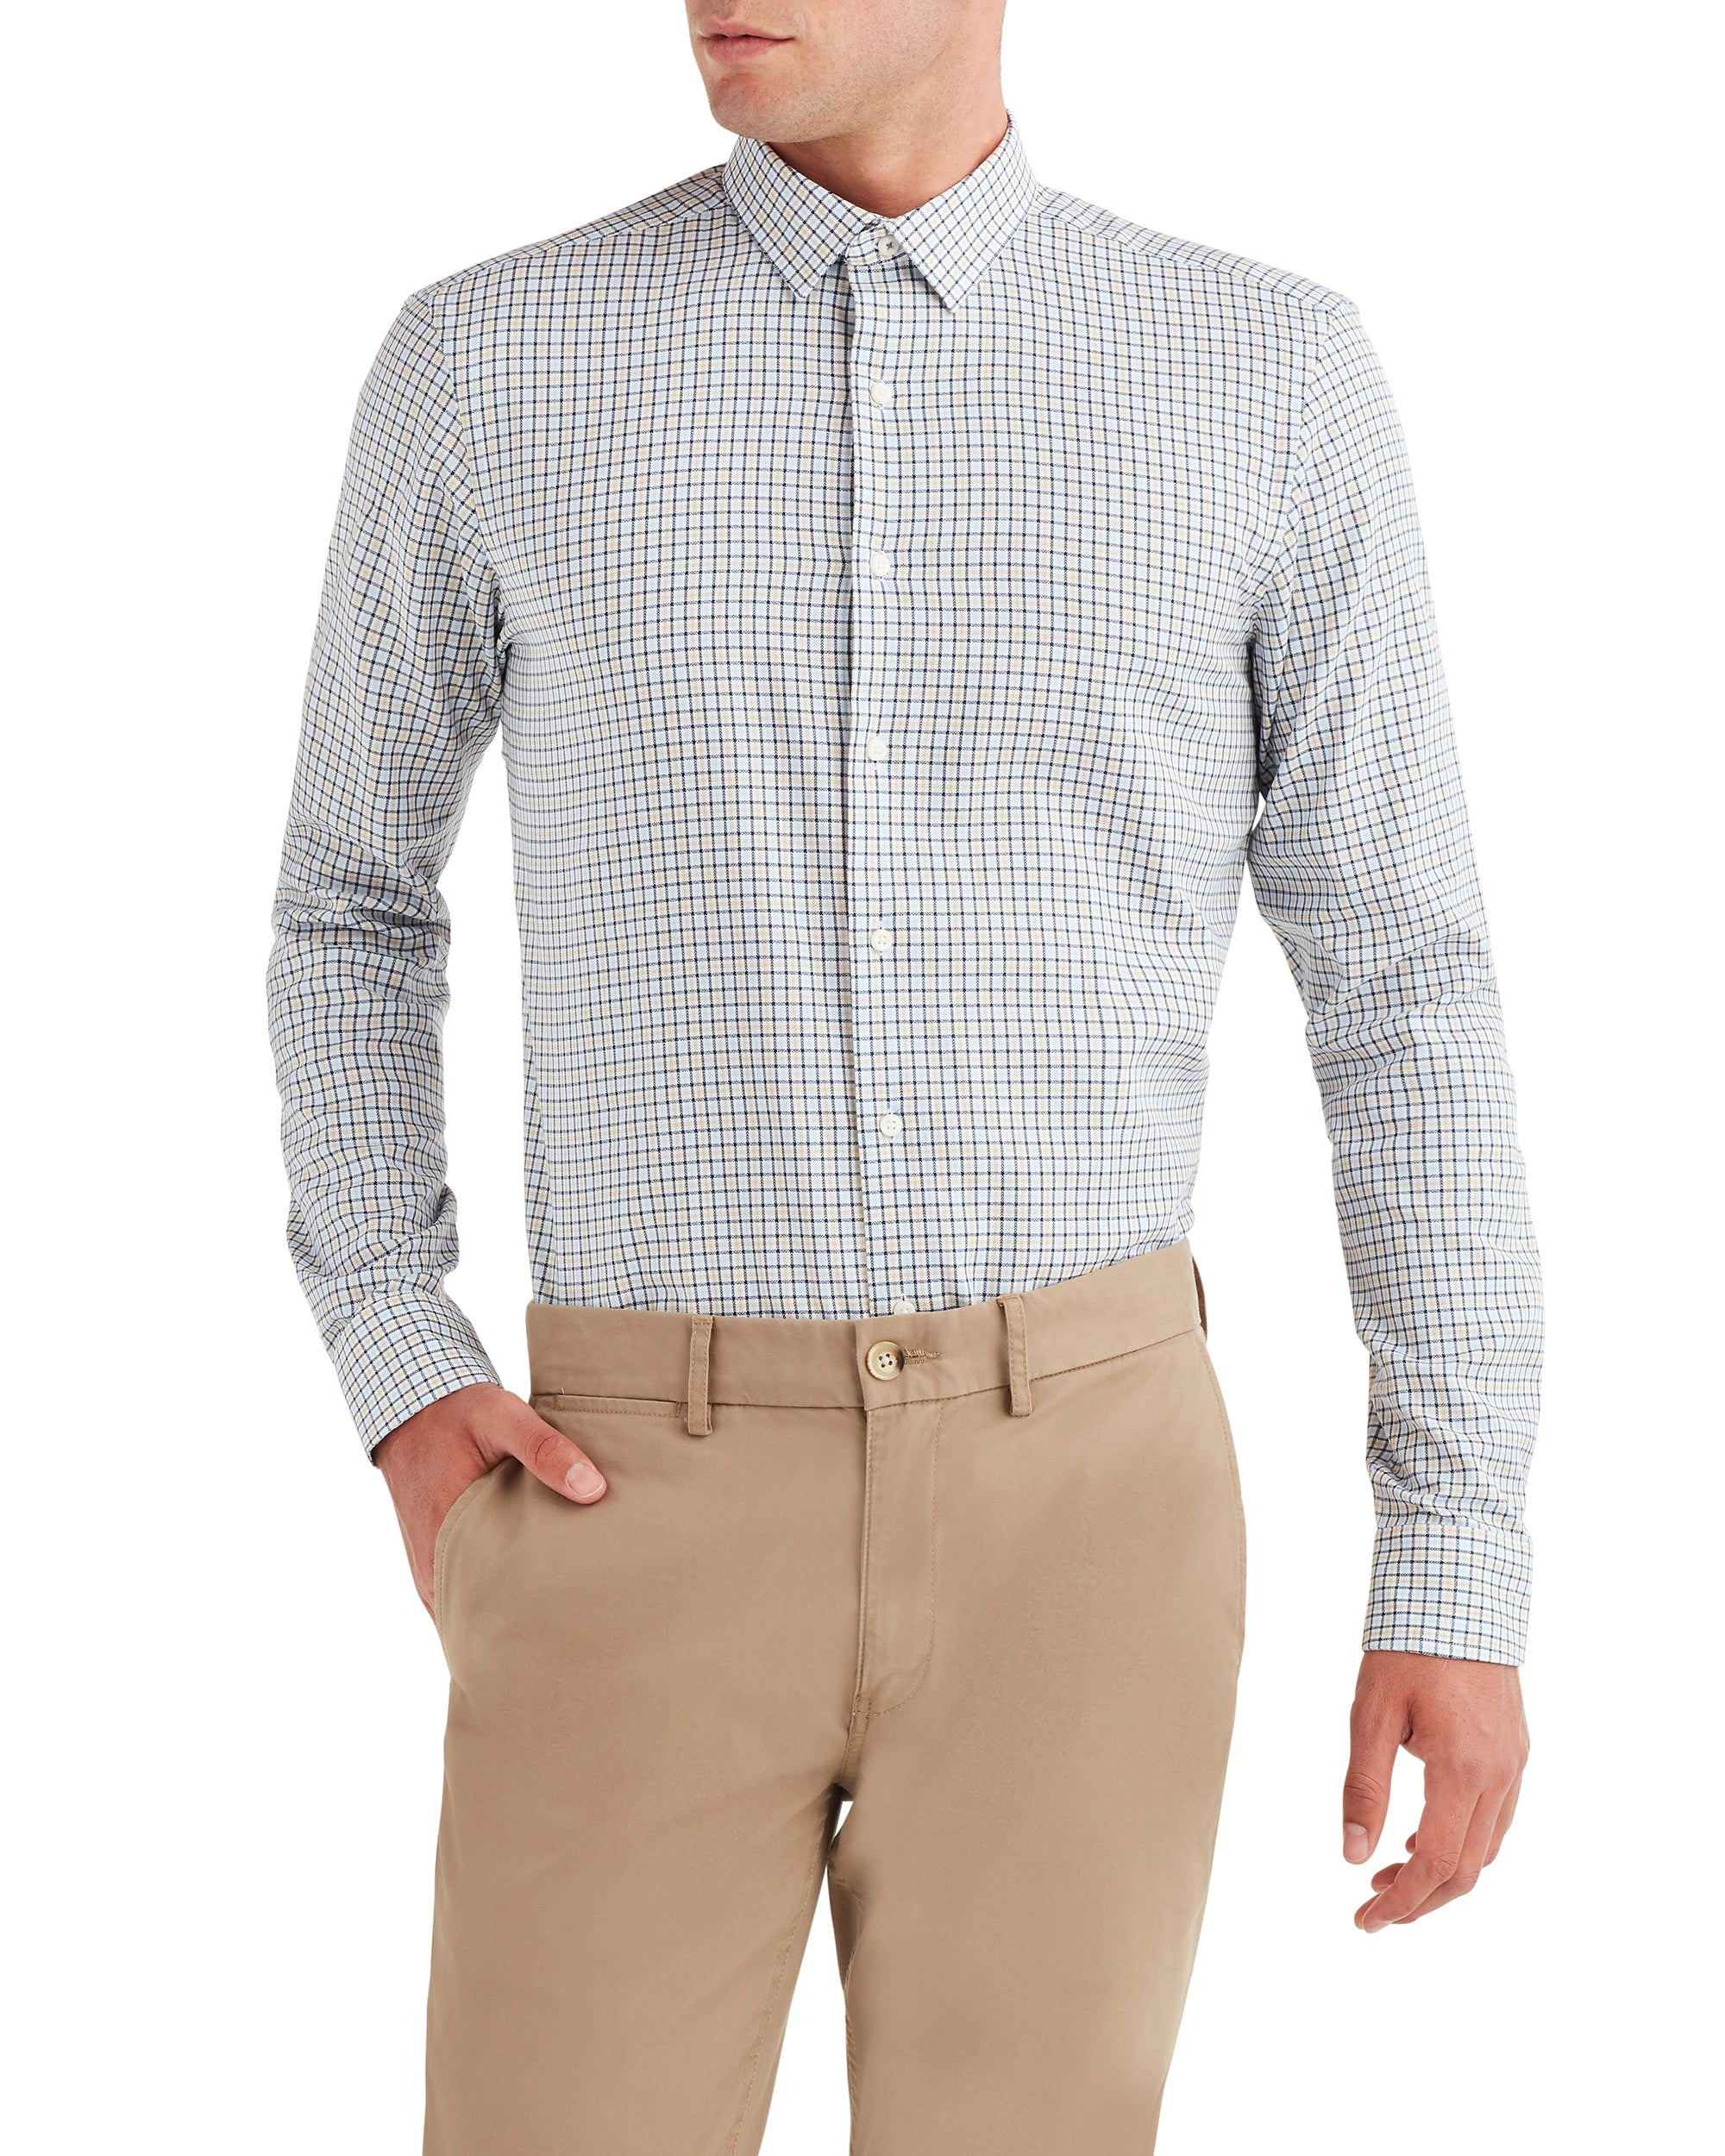 Herringbone Check Dress Shirt - Gold